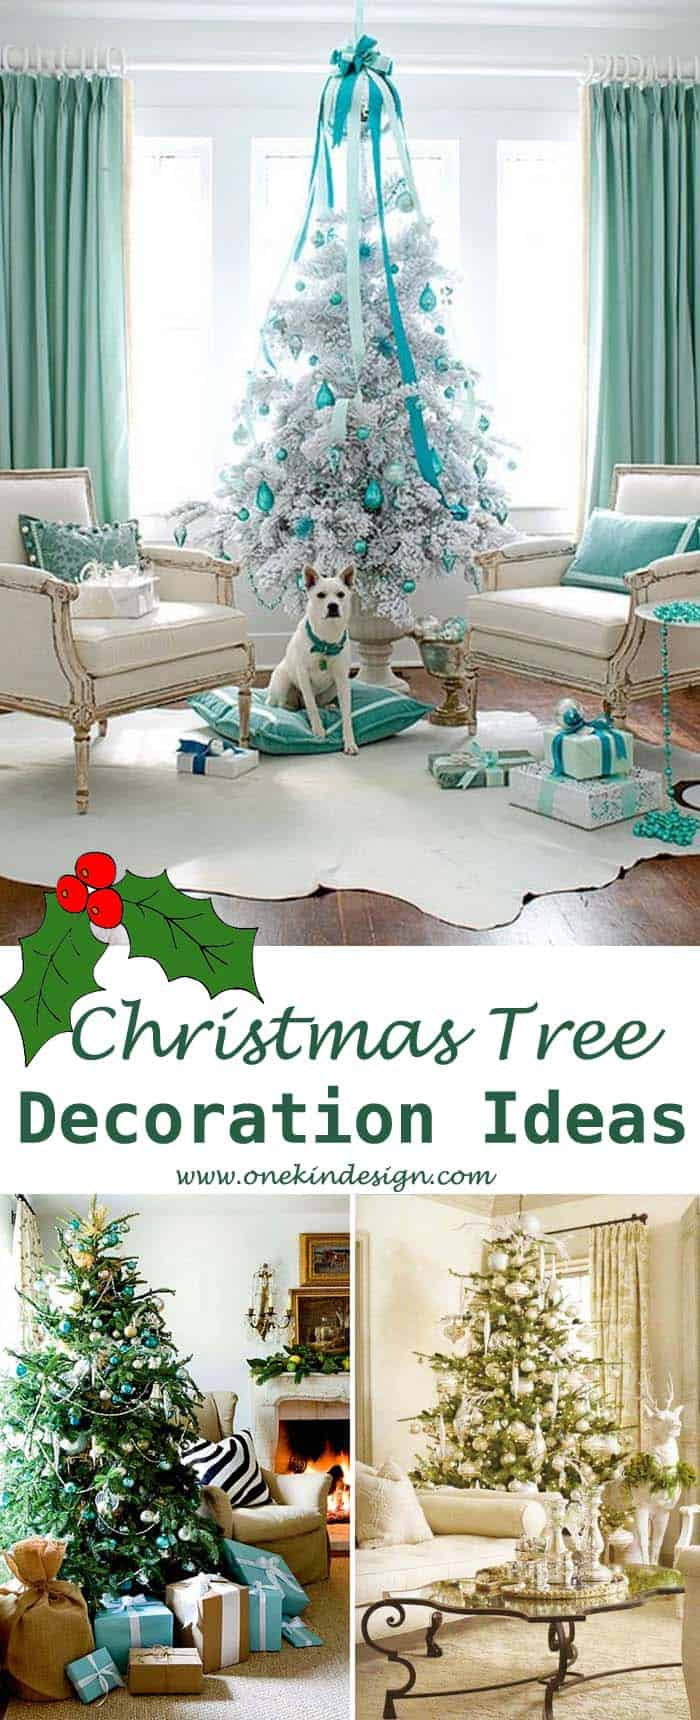 & 41 Most fabulous Christmas tree decoration ideas